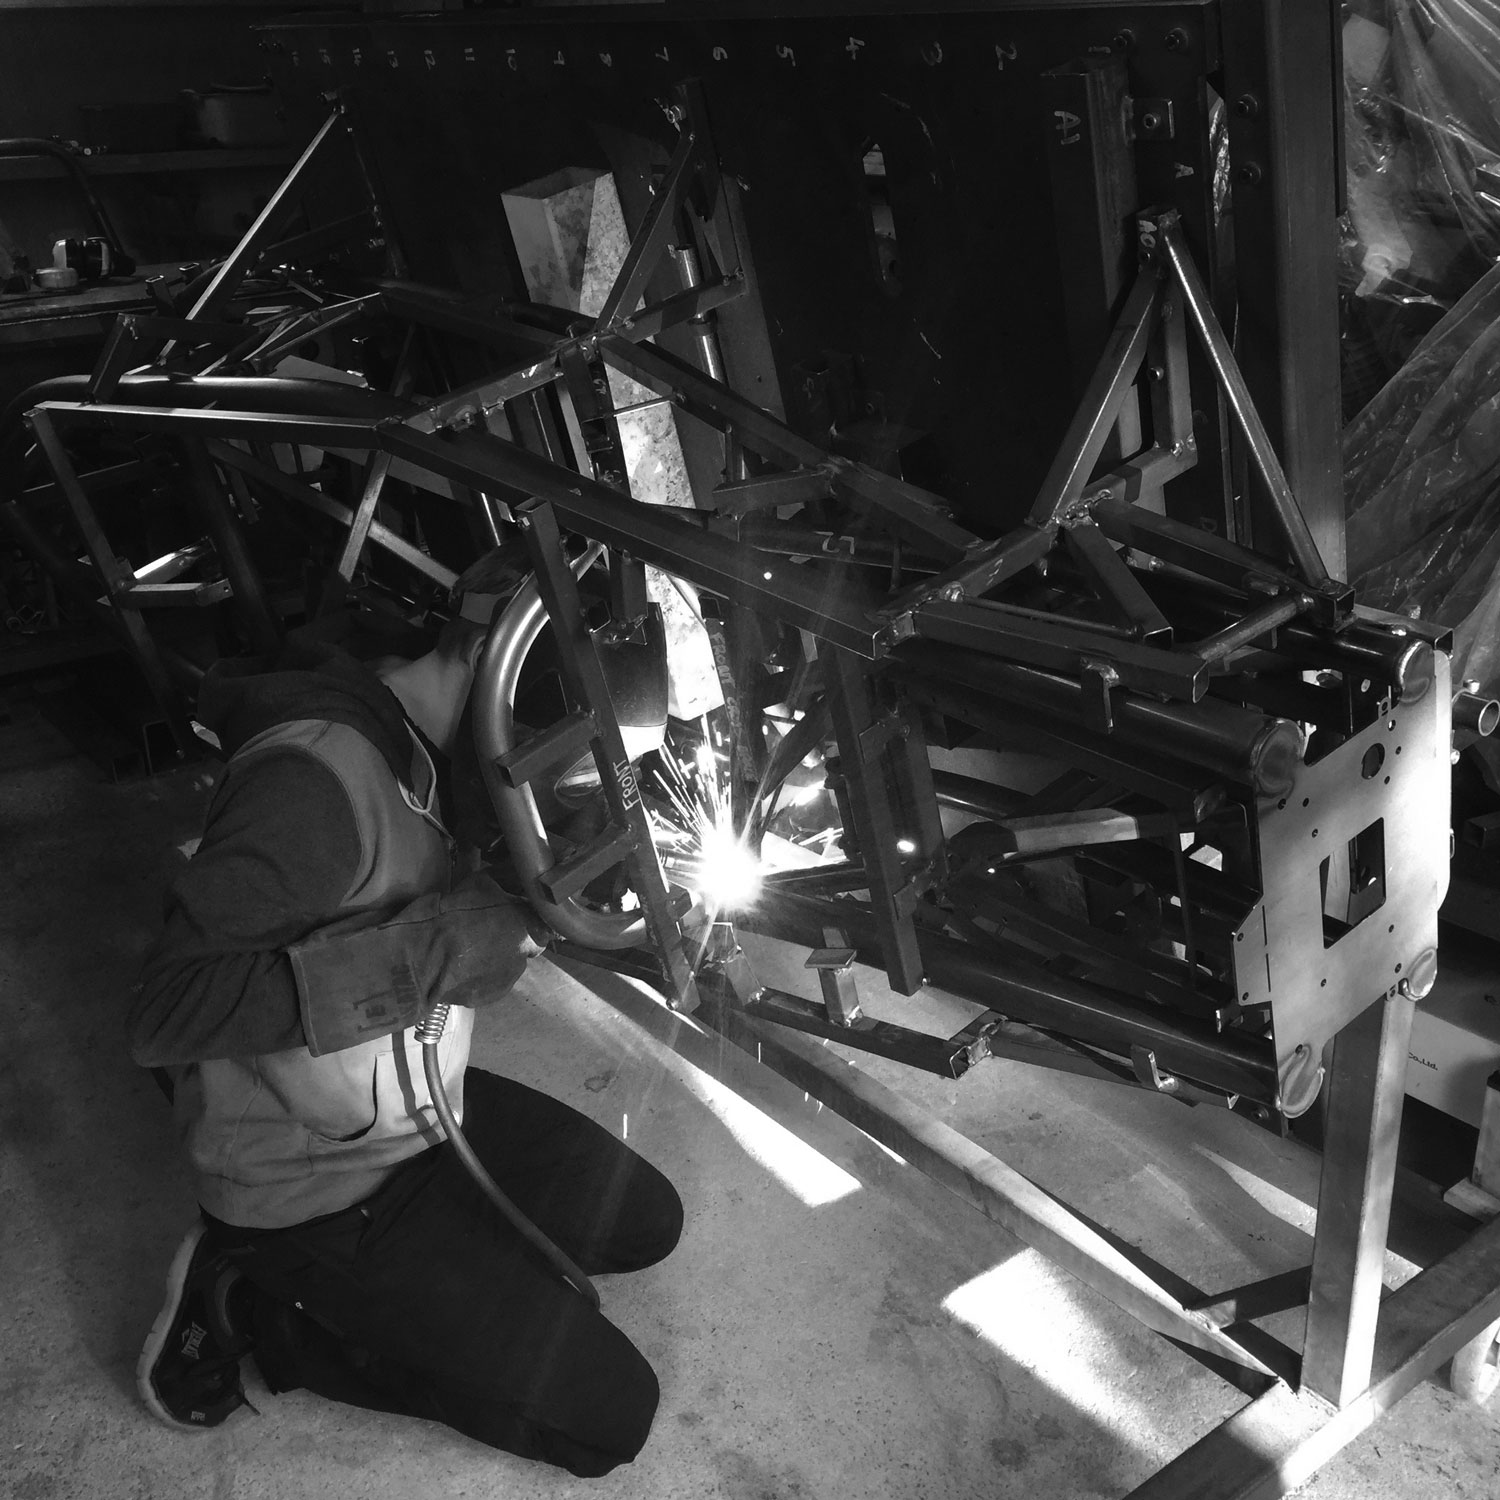 Chassis-weld